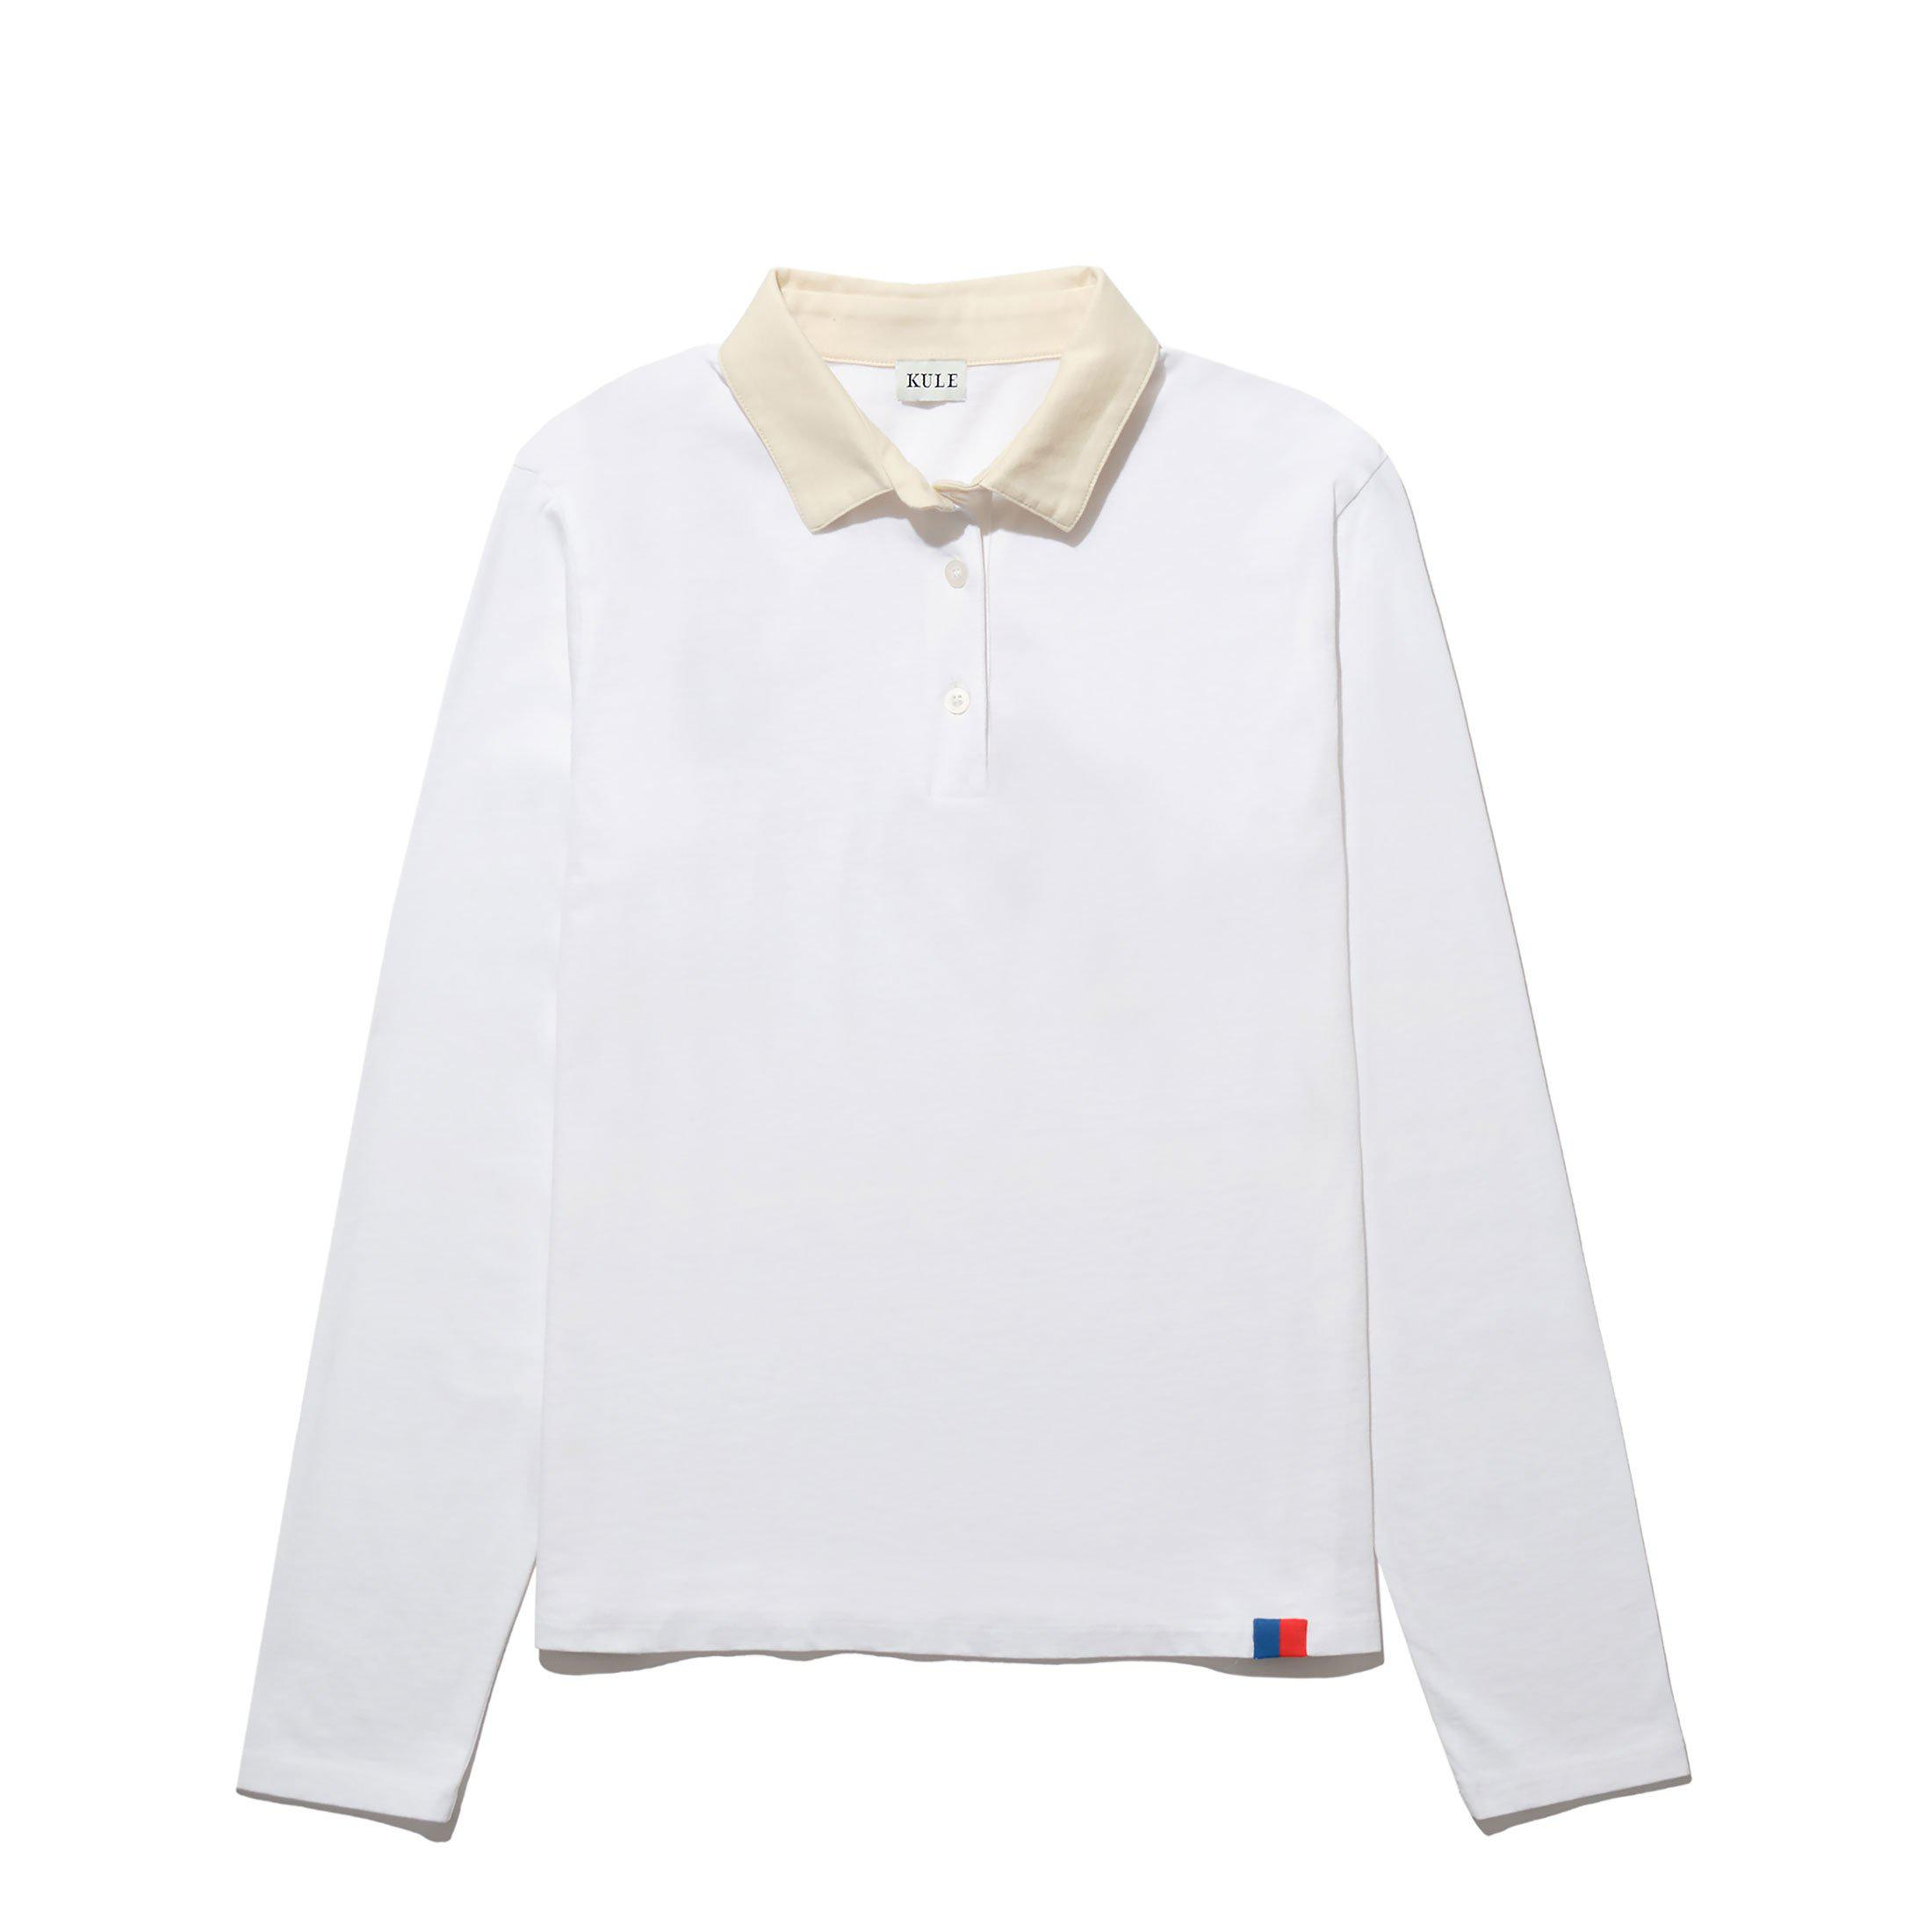 The Women's Rugby - White